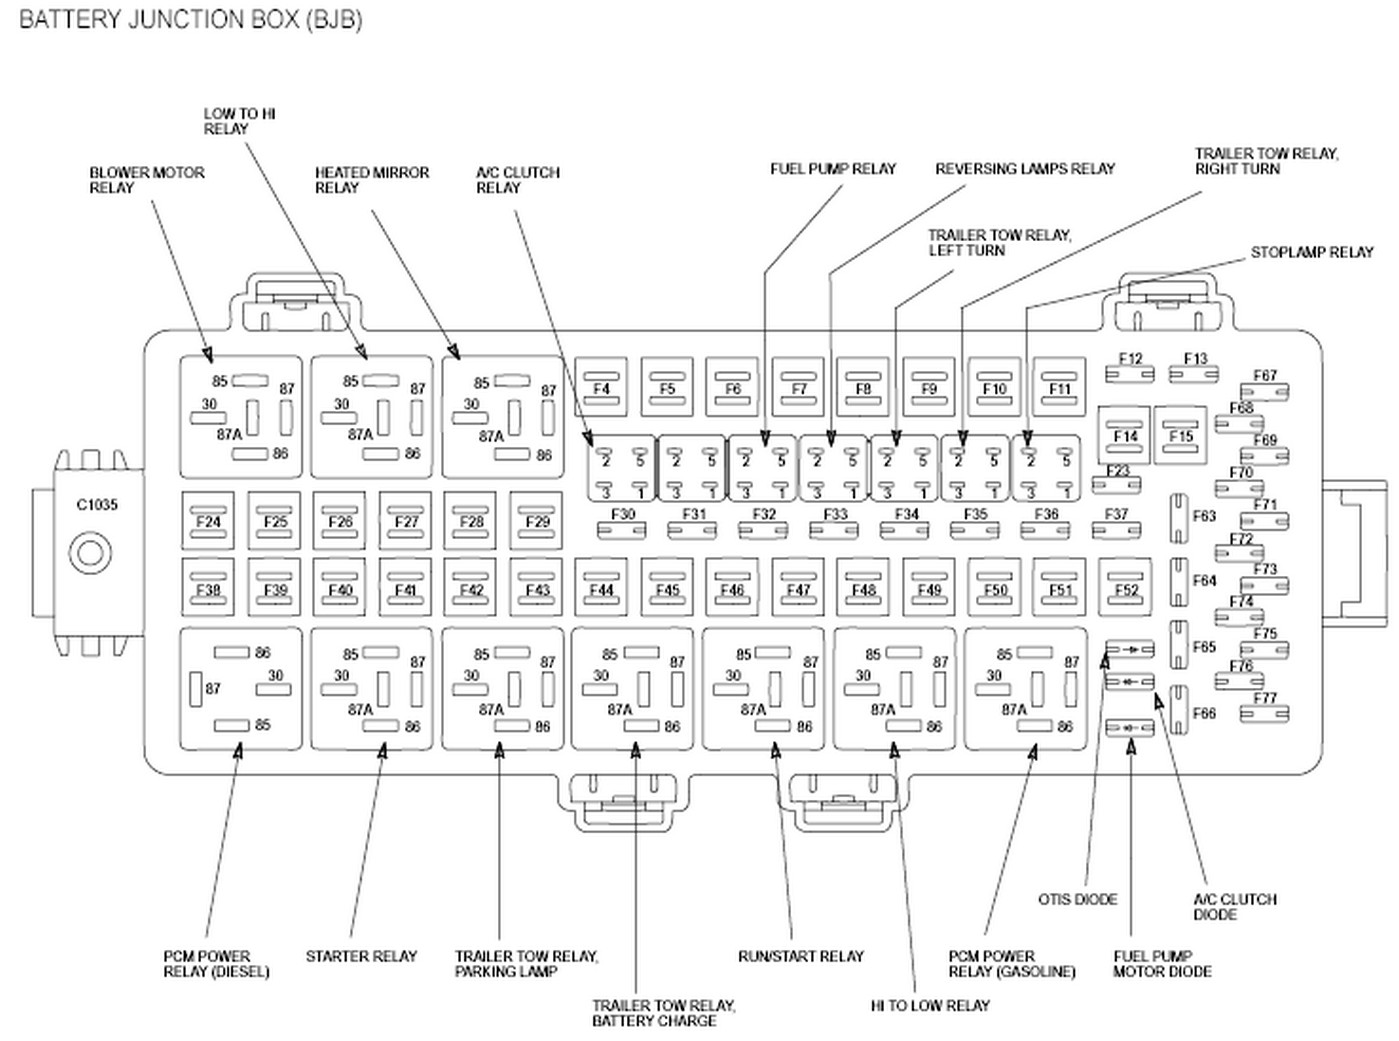 2011 ford f250 fuse box diagram Zoinyhu 2012 f250 fuse box location 2009 ford fusion fuse box diagram 2012 ford edge fuse box diagram at aneh.co